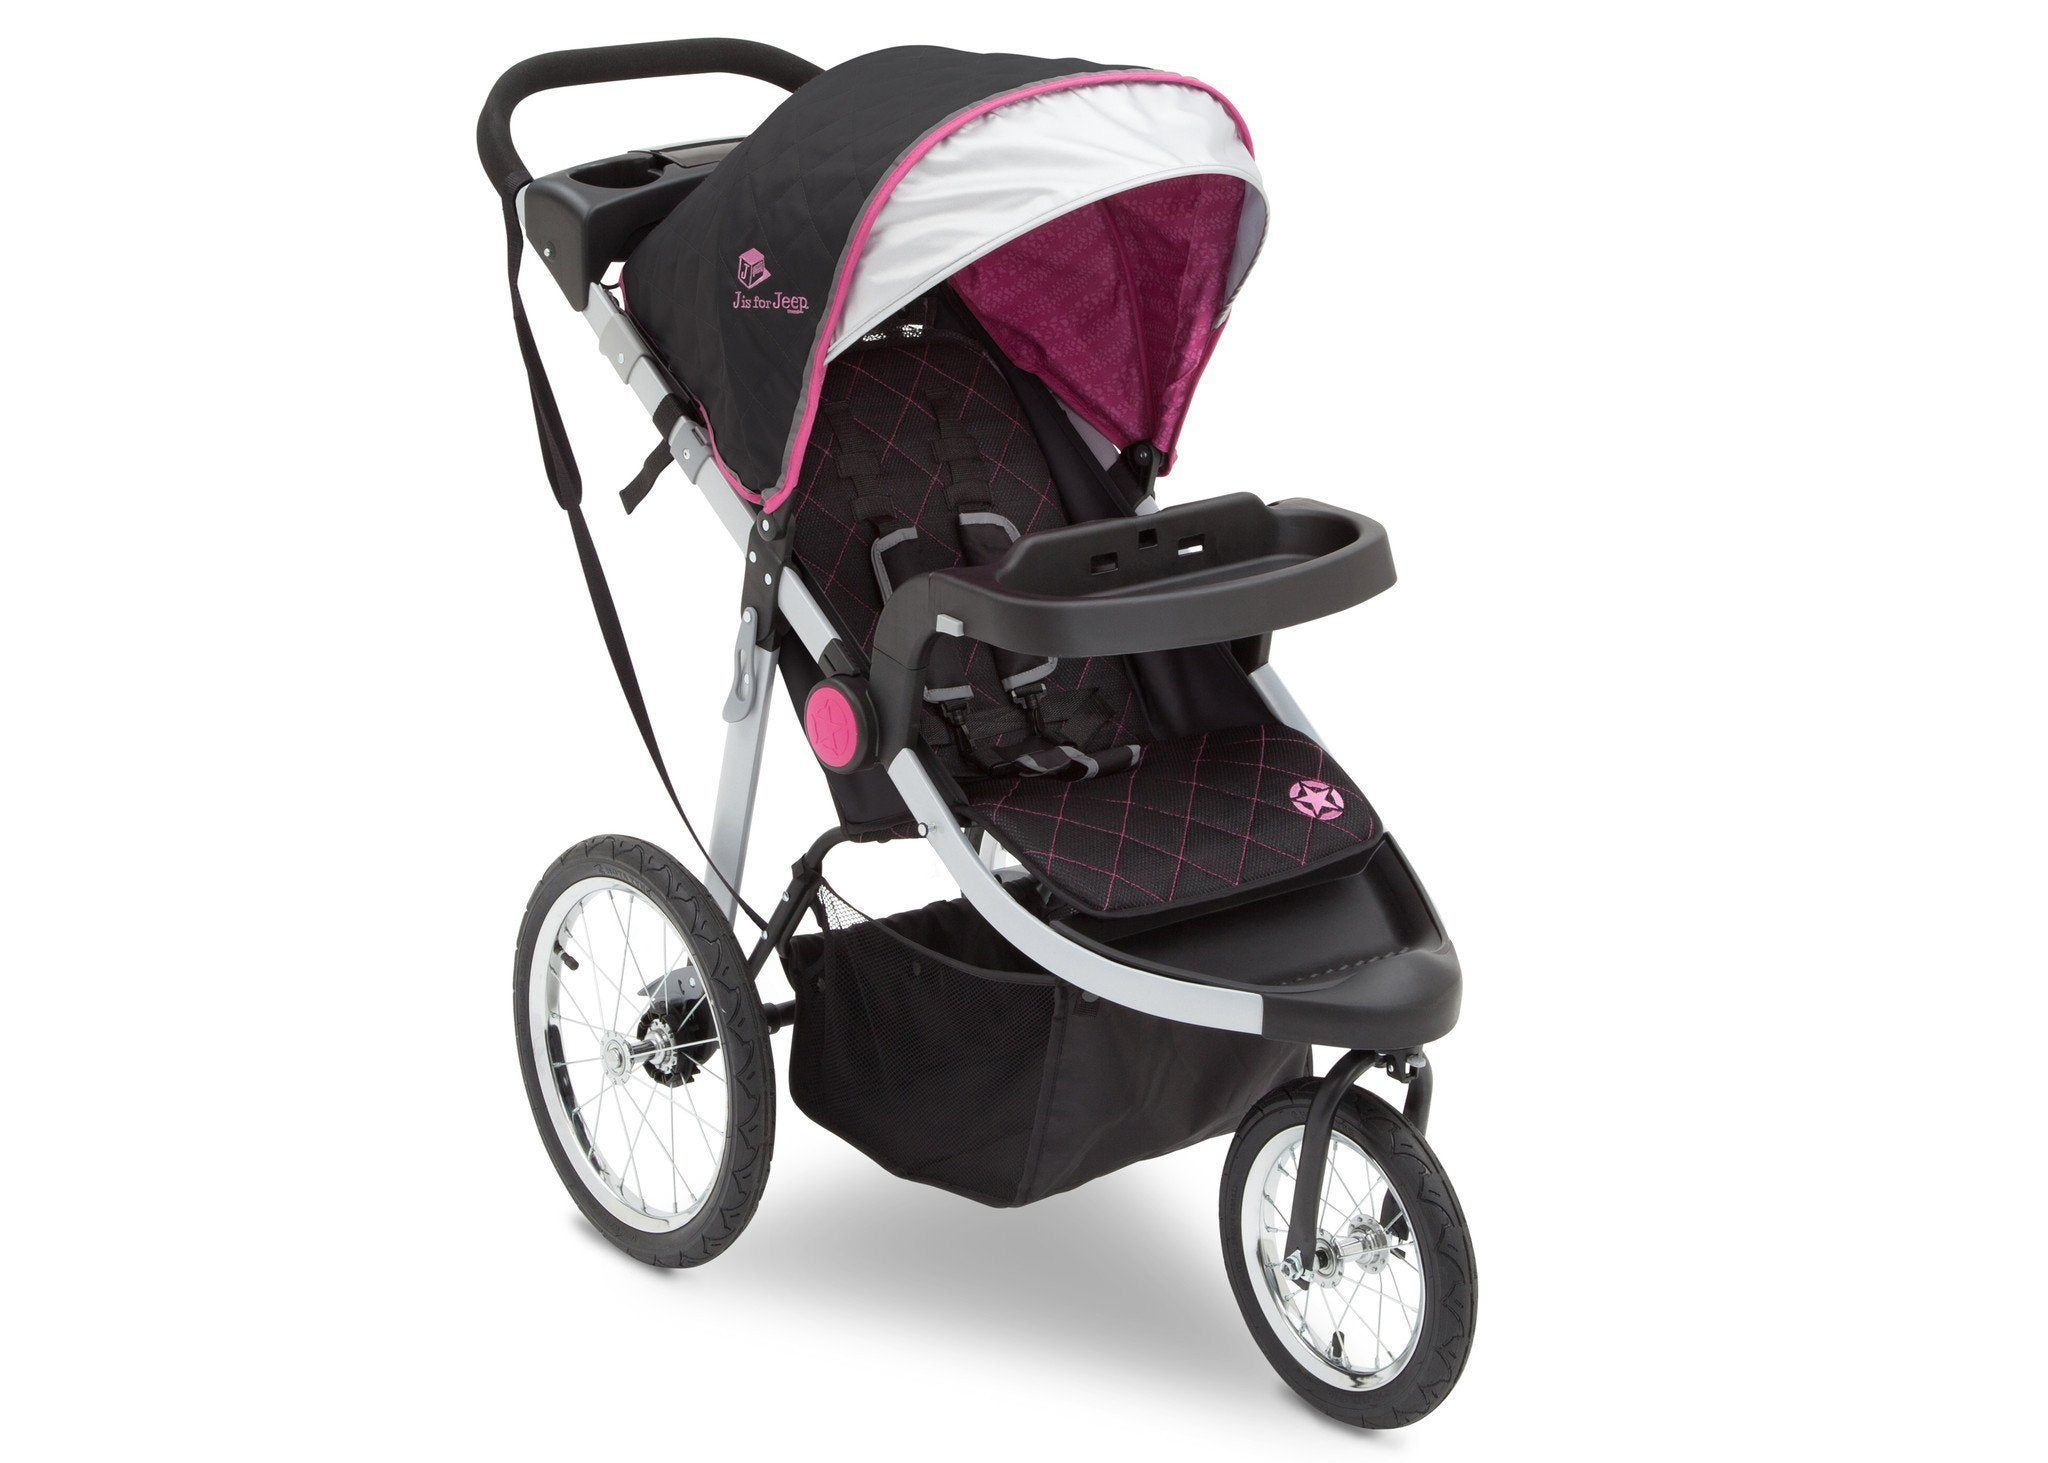 Delta Children J is for Jeep Brand Trek Pink Tonal (656) Cross Country All Terrain Jogging Stroller Right Side View, with Canopy, Child Tray and Sun Visor c1c